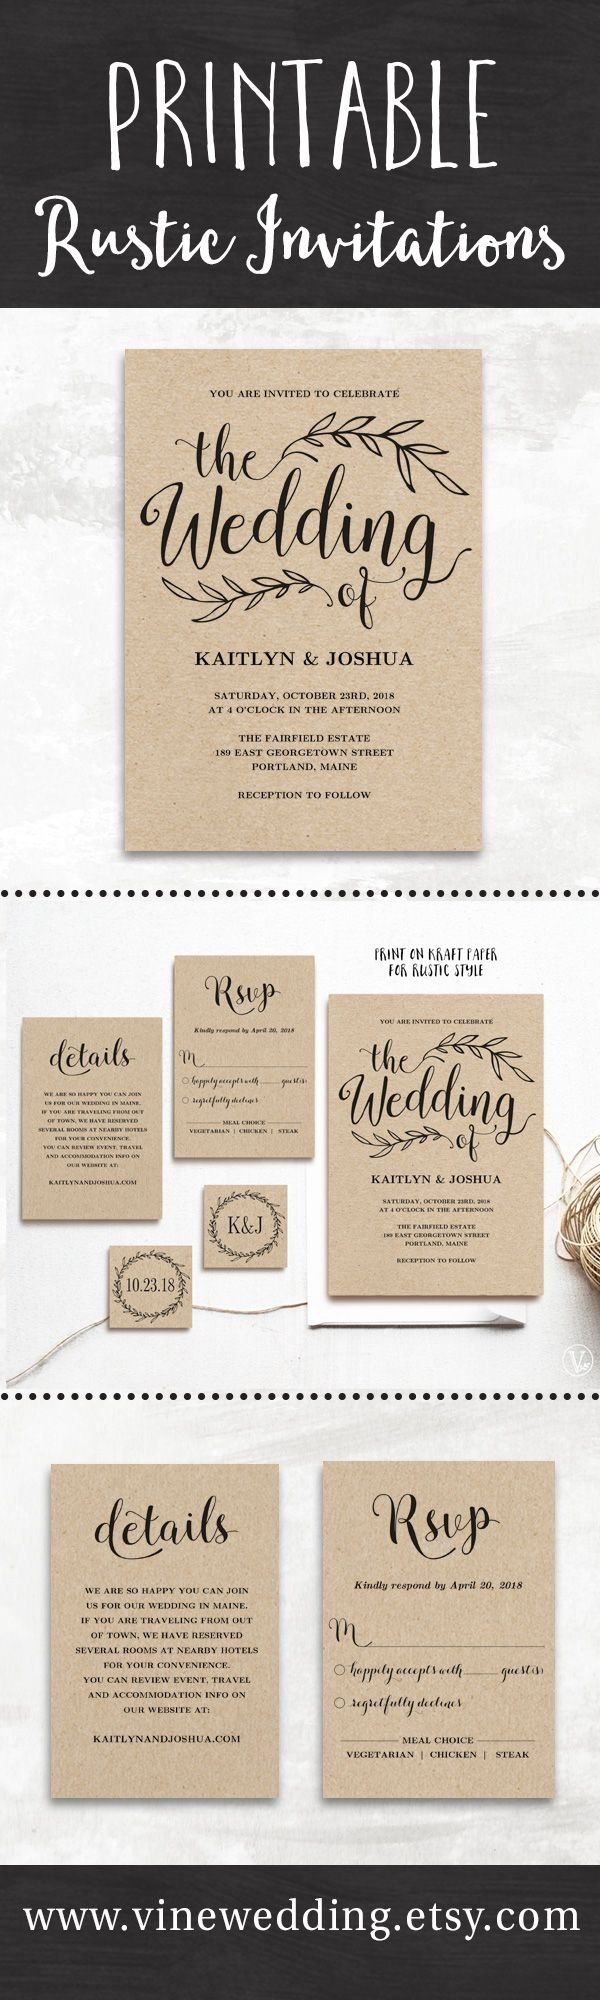 sample of wedding invitations templates%0A Beautiful rustic wedding invitations  Editable instant download templates  you can print as many as you